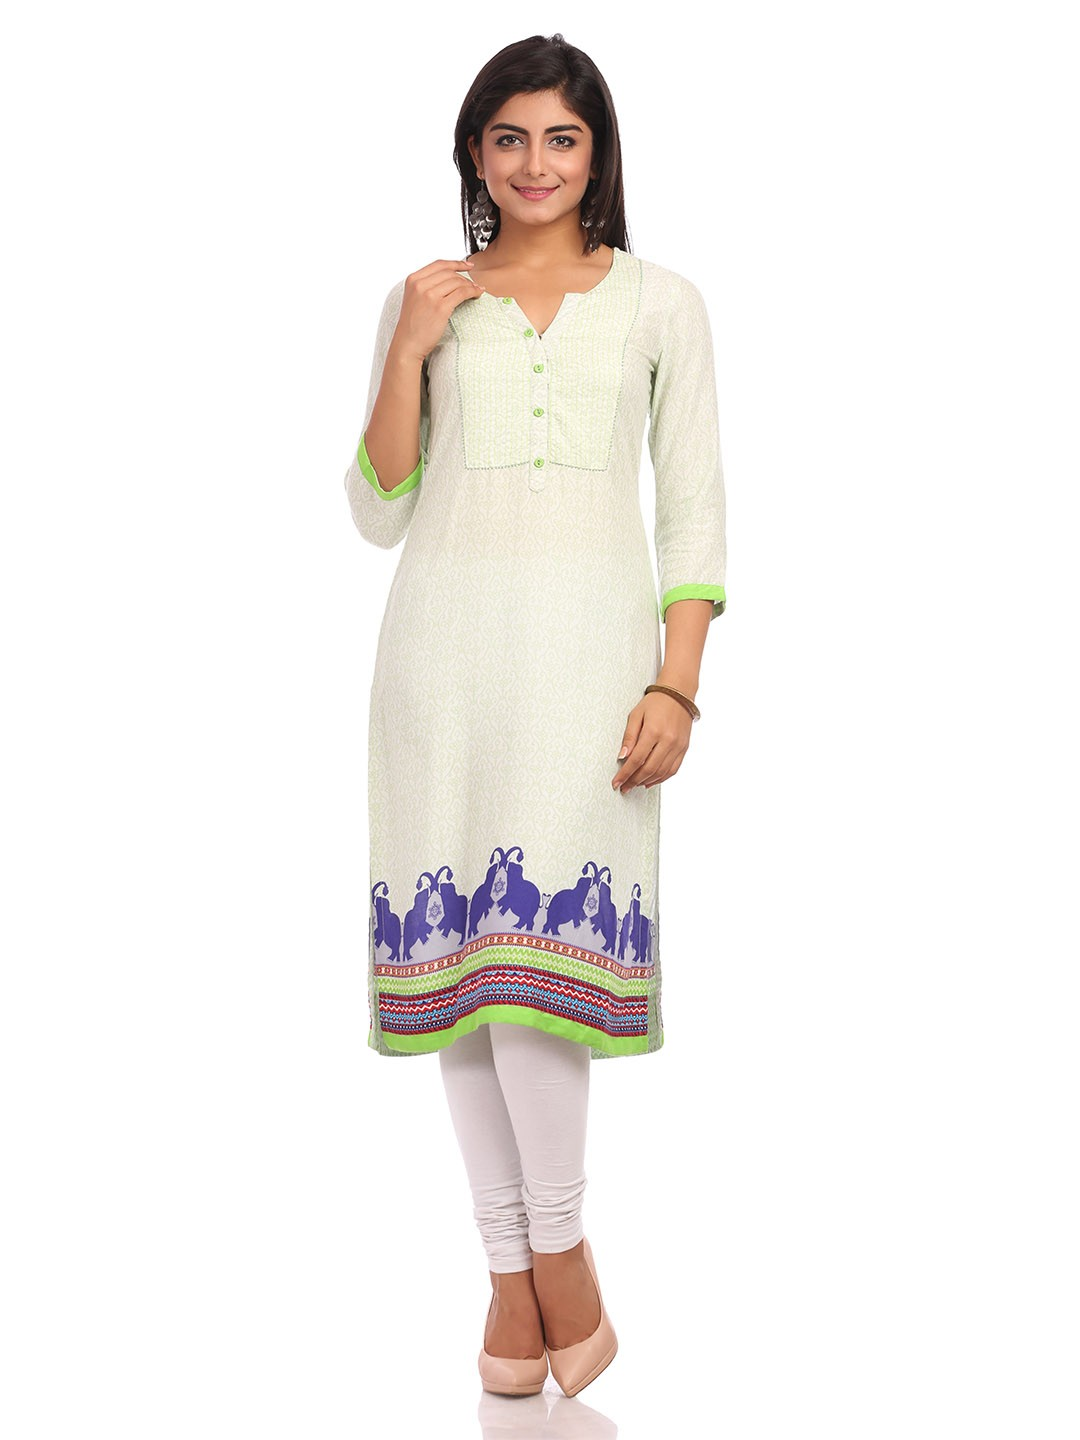 Ethnic Workwear for Monsoon| cherryontopblog.com